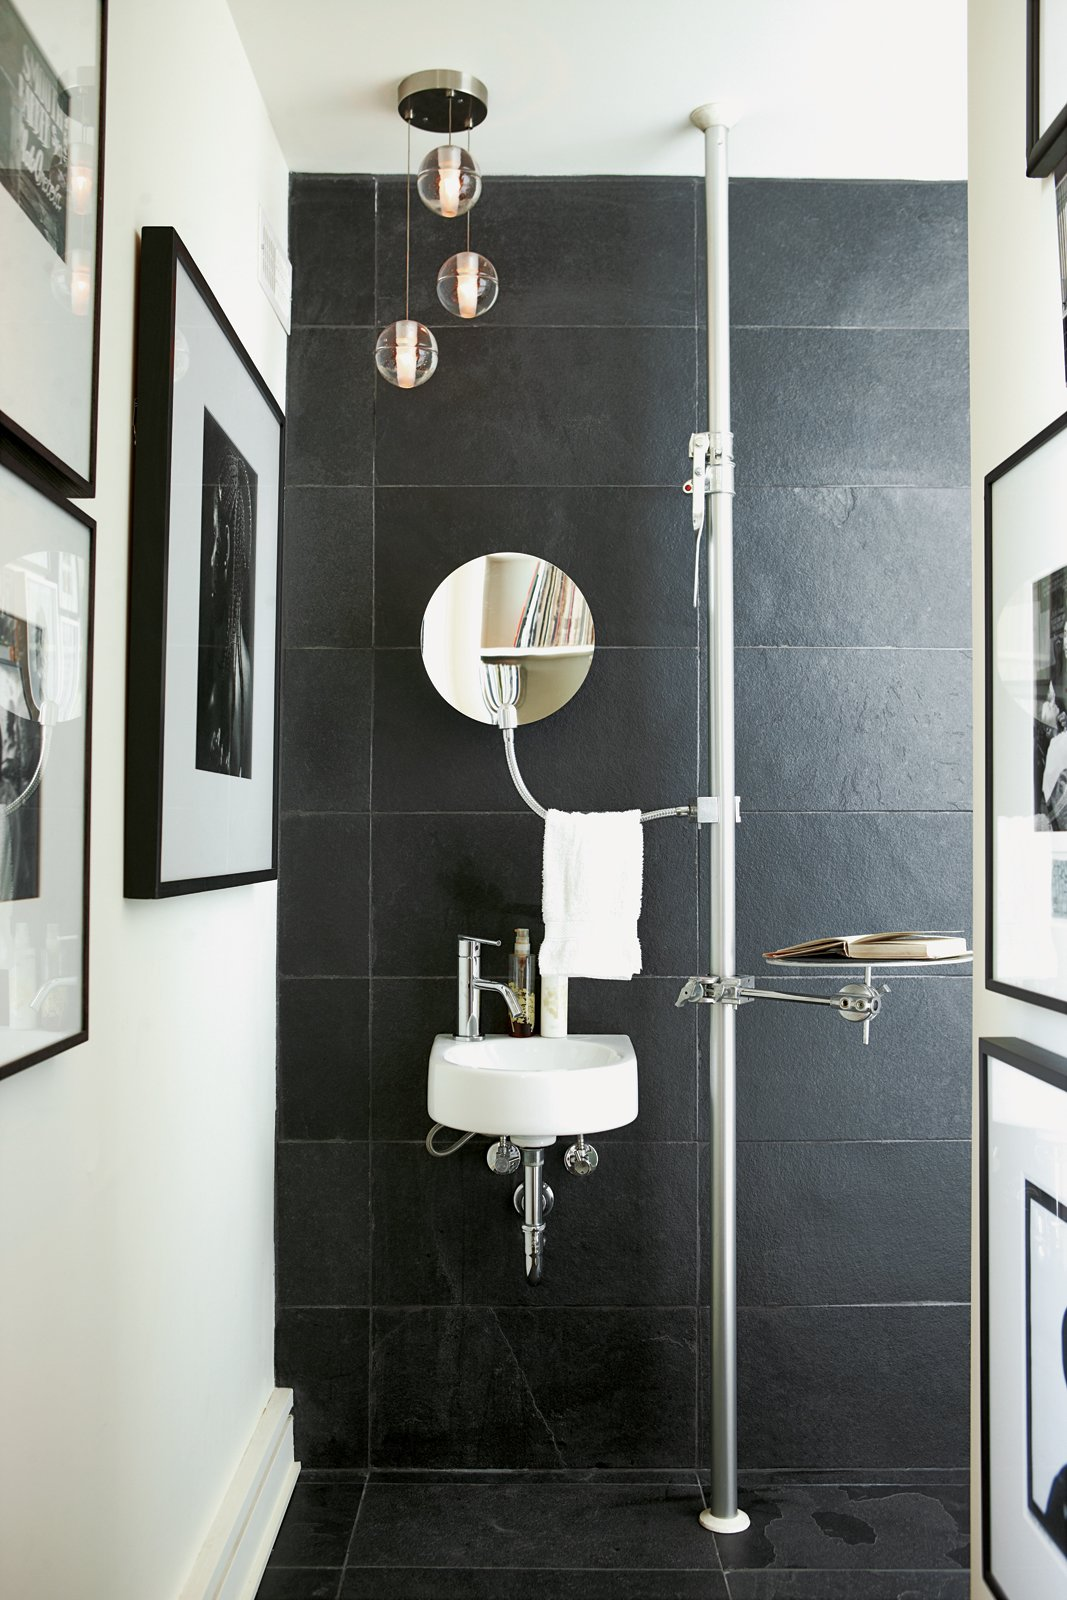 Bath and Wall Mount A modular shelf system by Alu provides a more sculptural take on the classic bathroom vanity in this Toronto home.  Best Bath Photos from Party-Friendly Apartment in Toronto